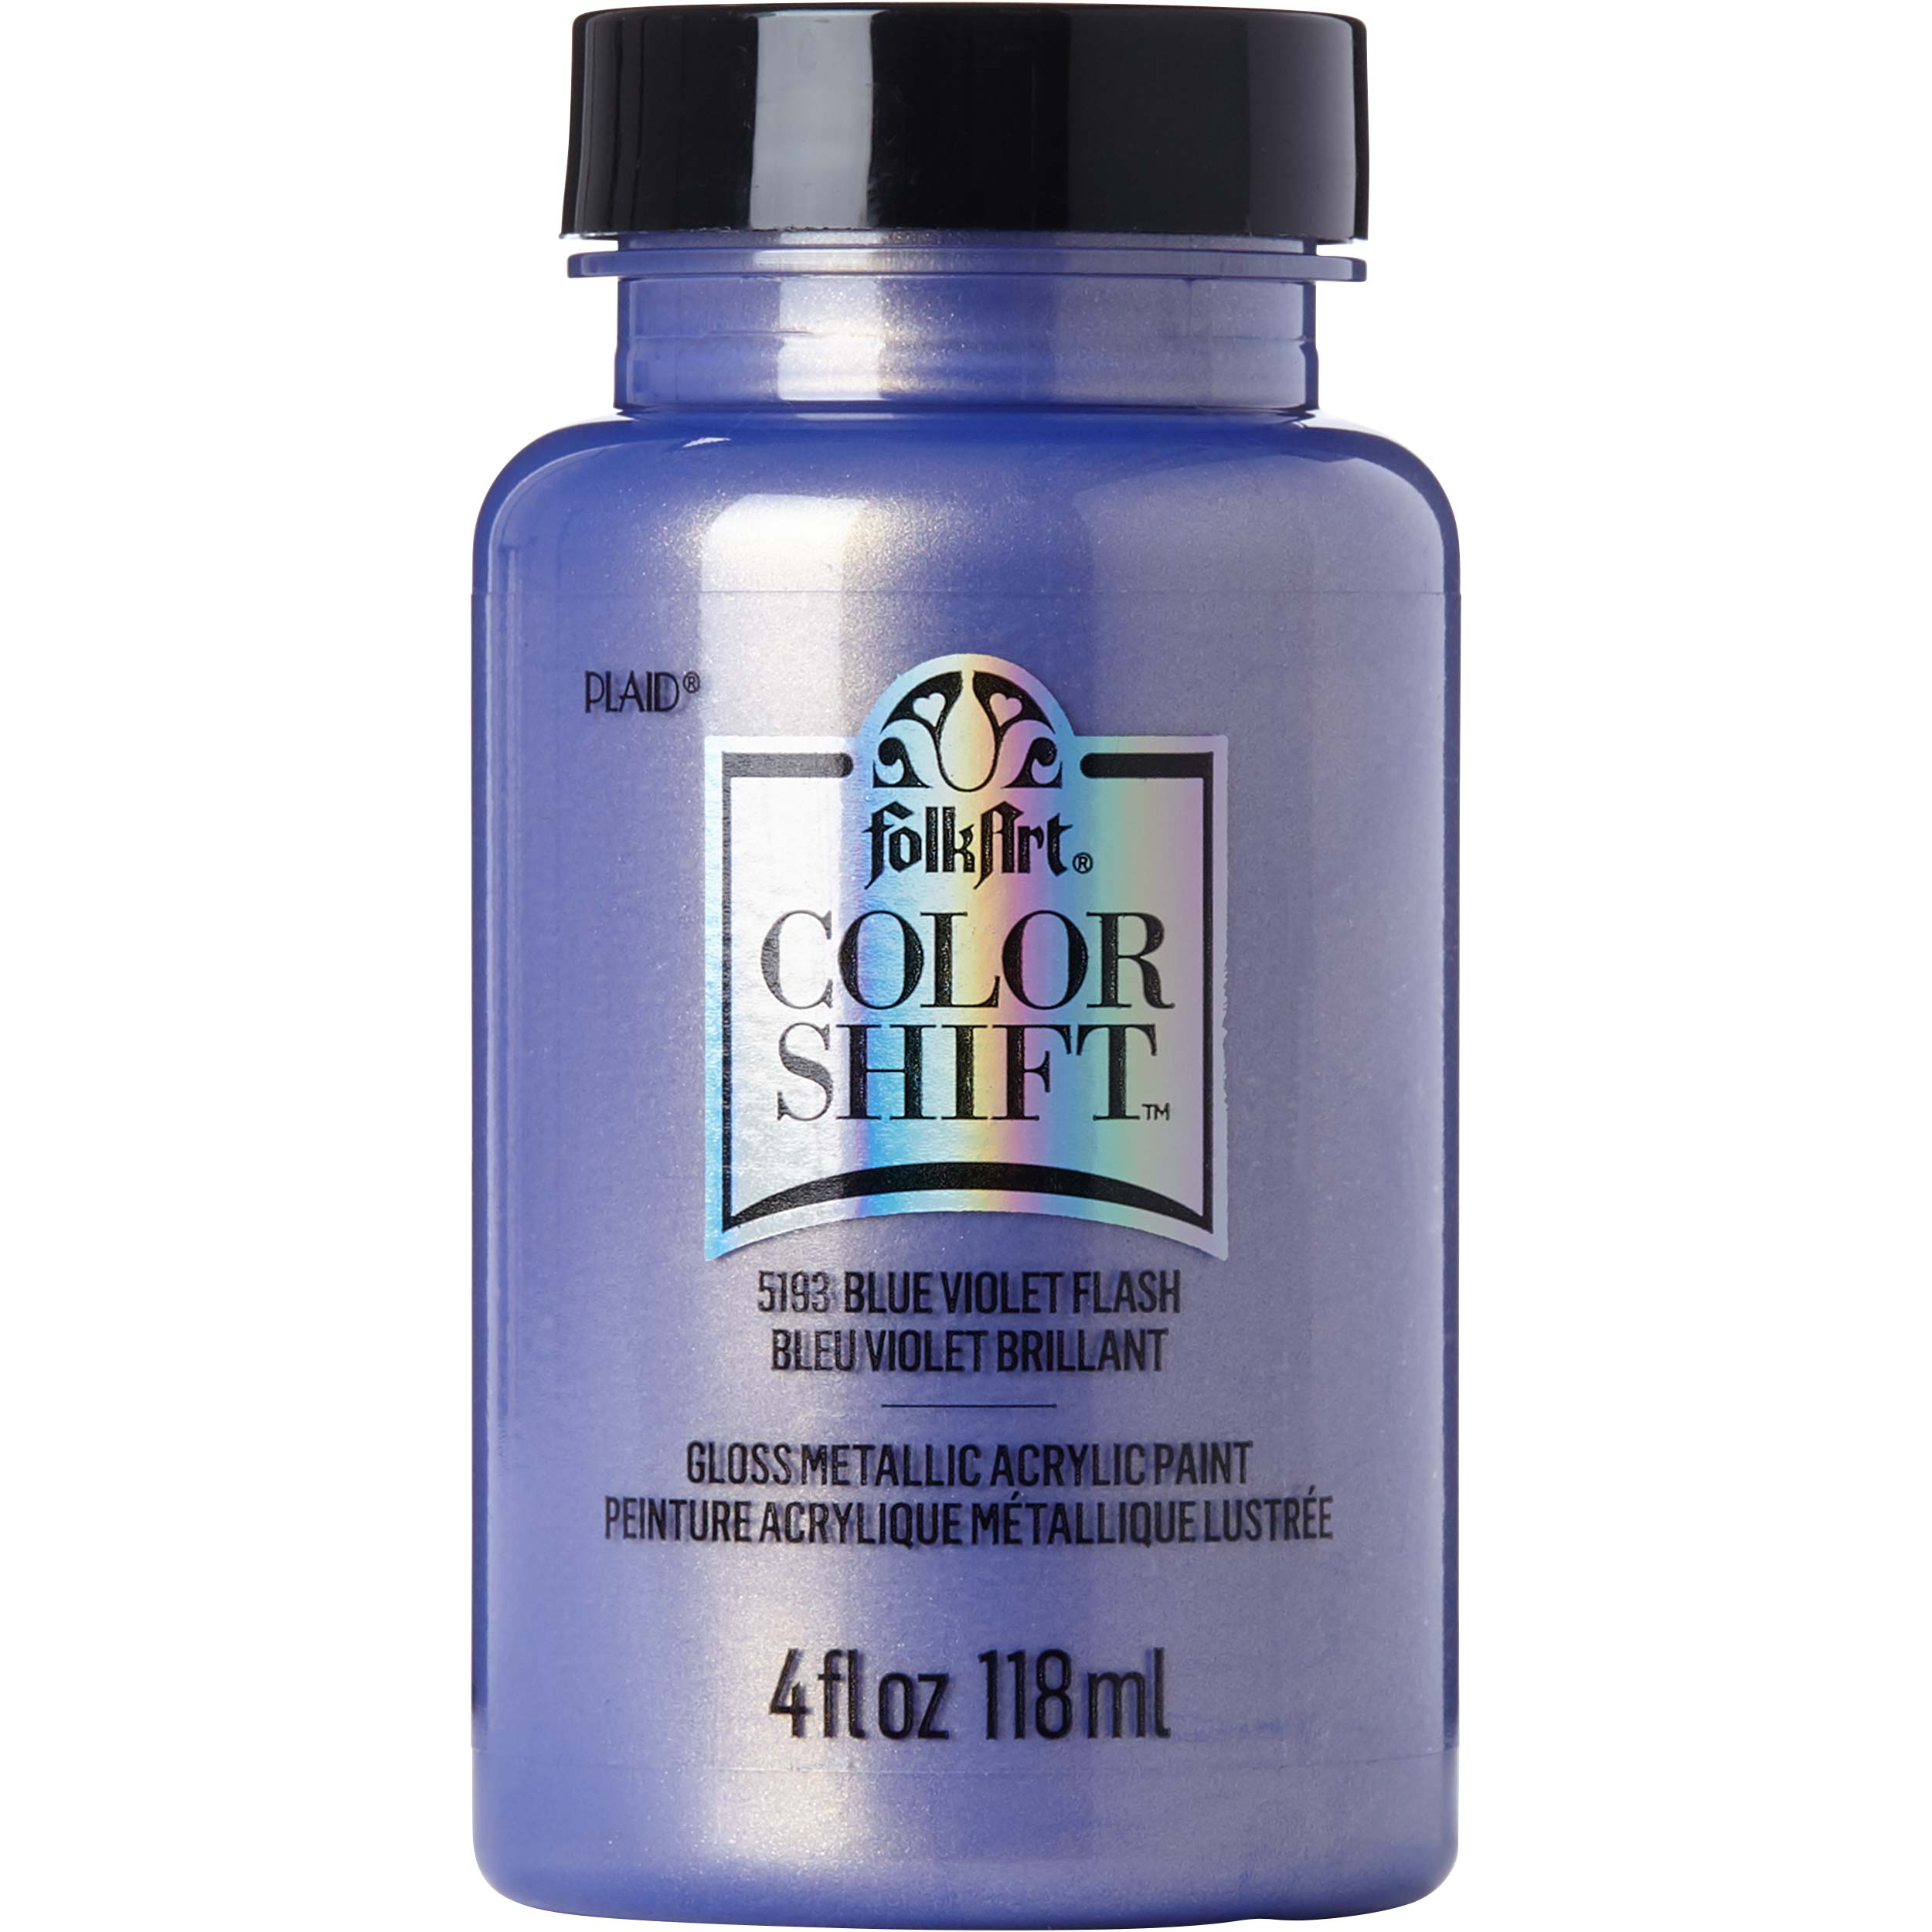 FolkArt ® Color Shift™ Acrylic Paint - Blue Violet Flash, 4 oz. - 5193